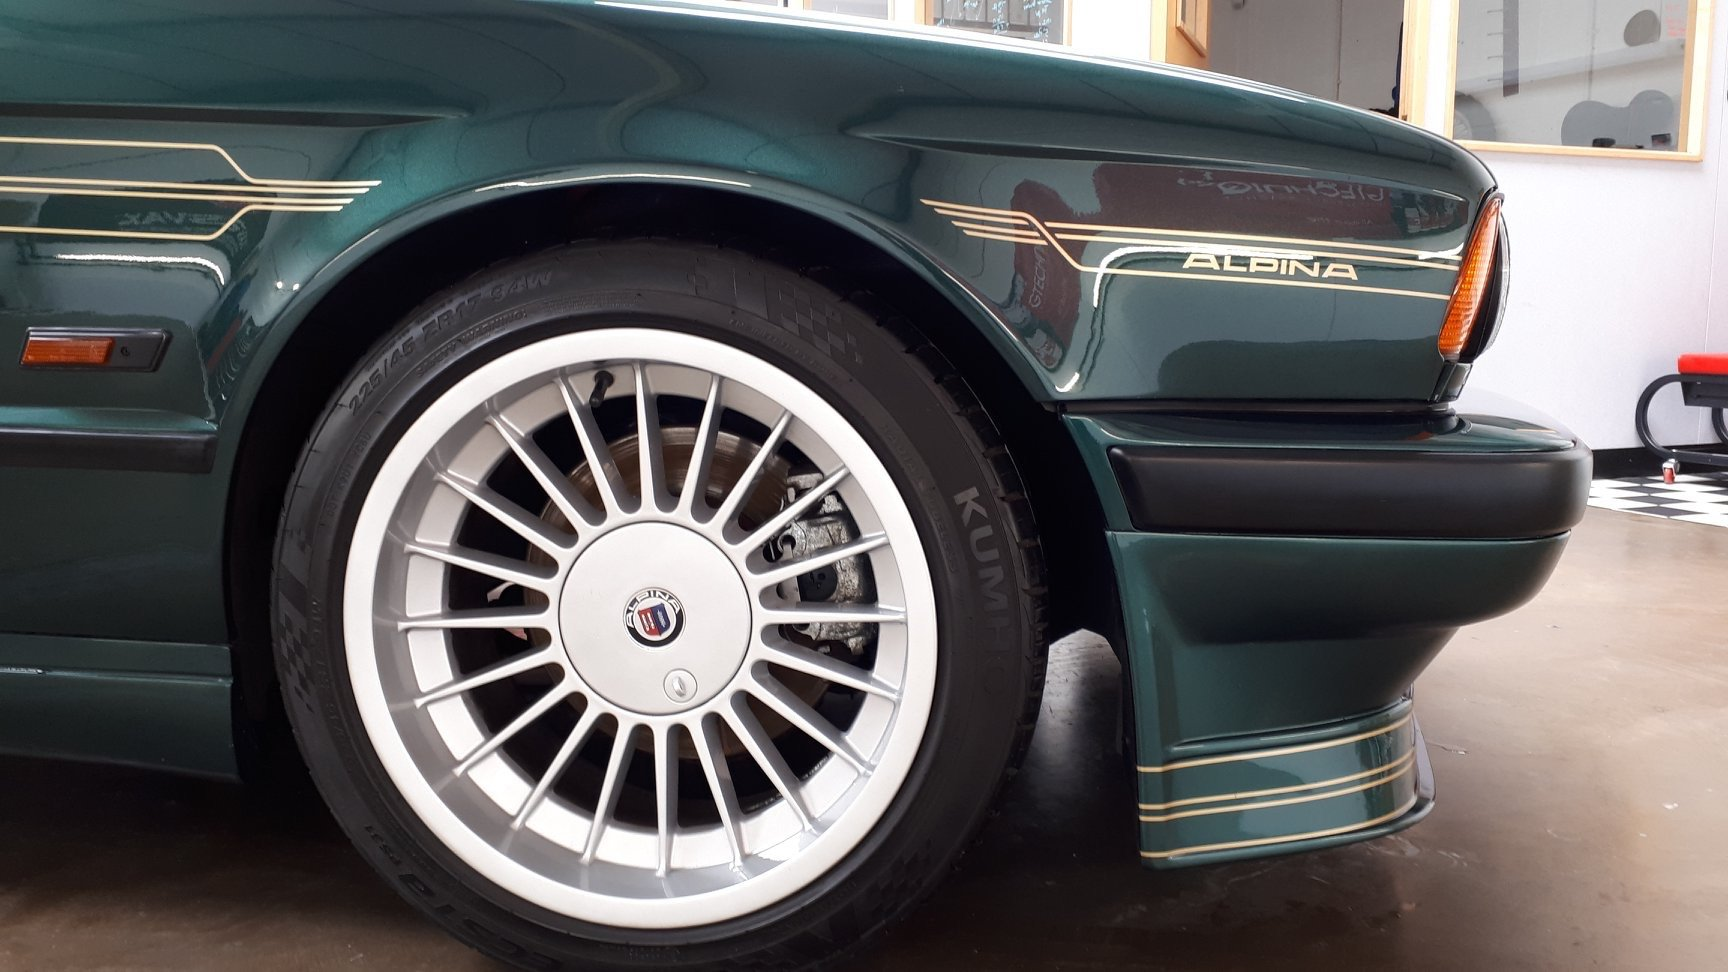 1990 Alpina B3.5 For Sale (picture 4 of 6)